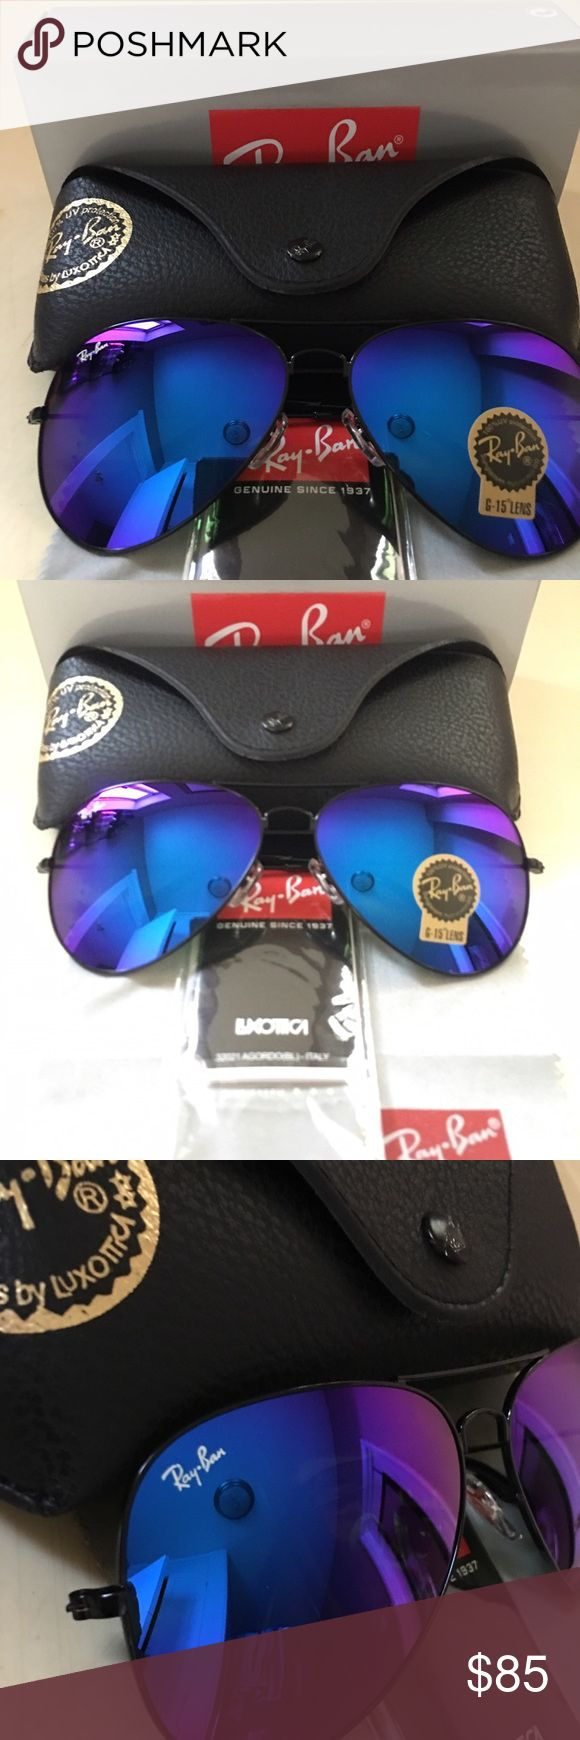 ray ban models and prices  1000+ ideas about Ray Ban Models on Pinterest